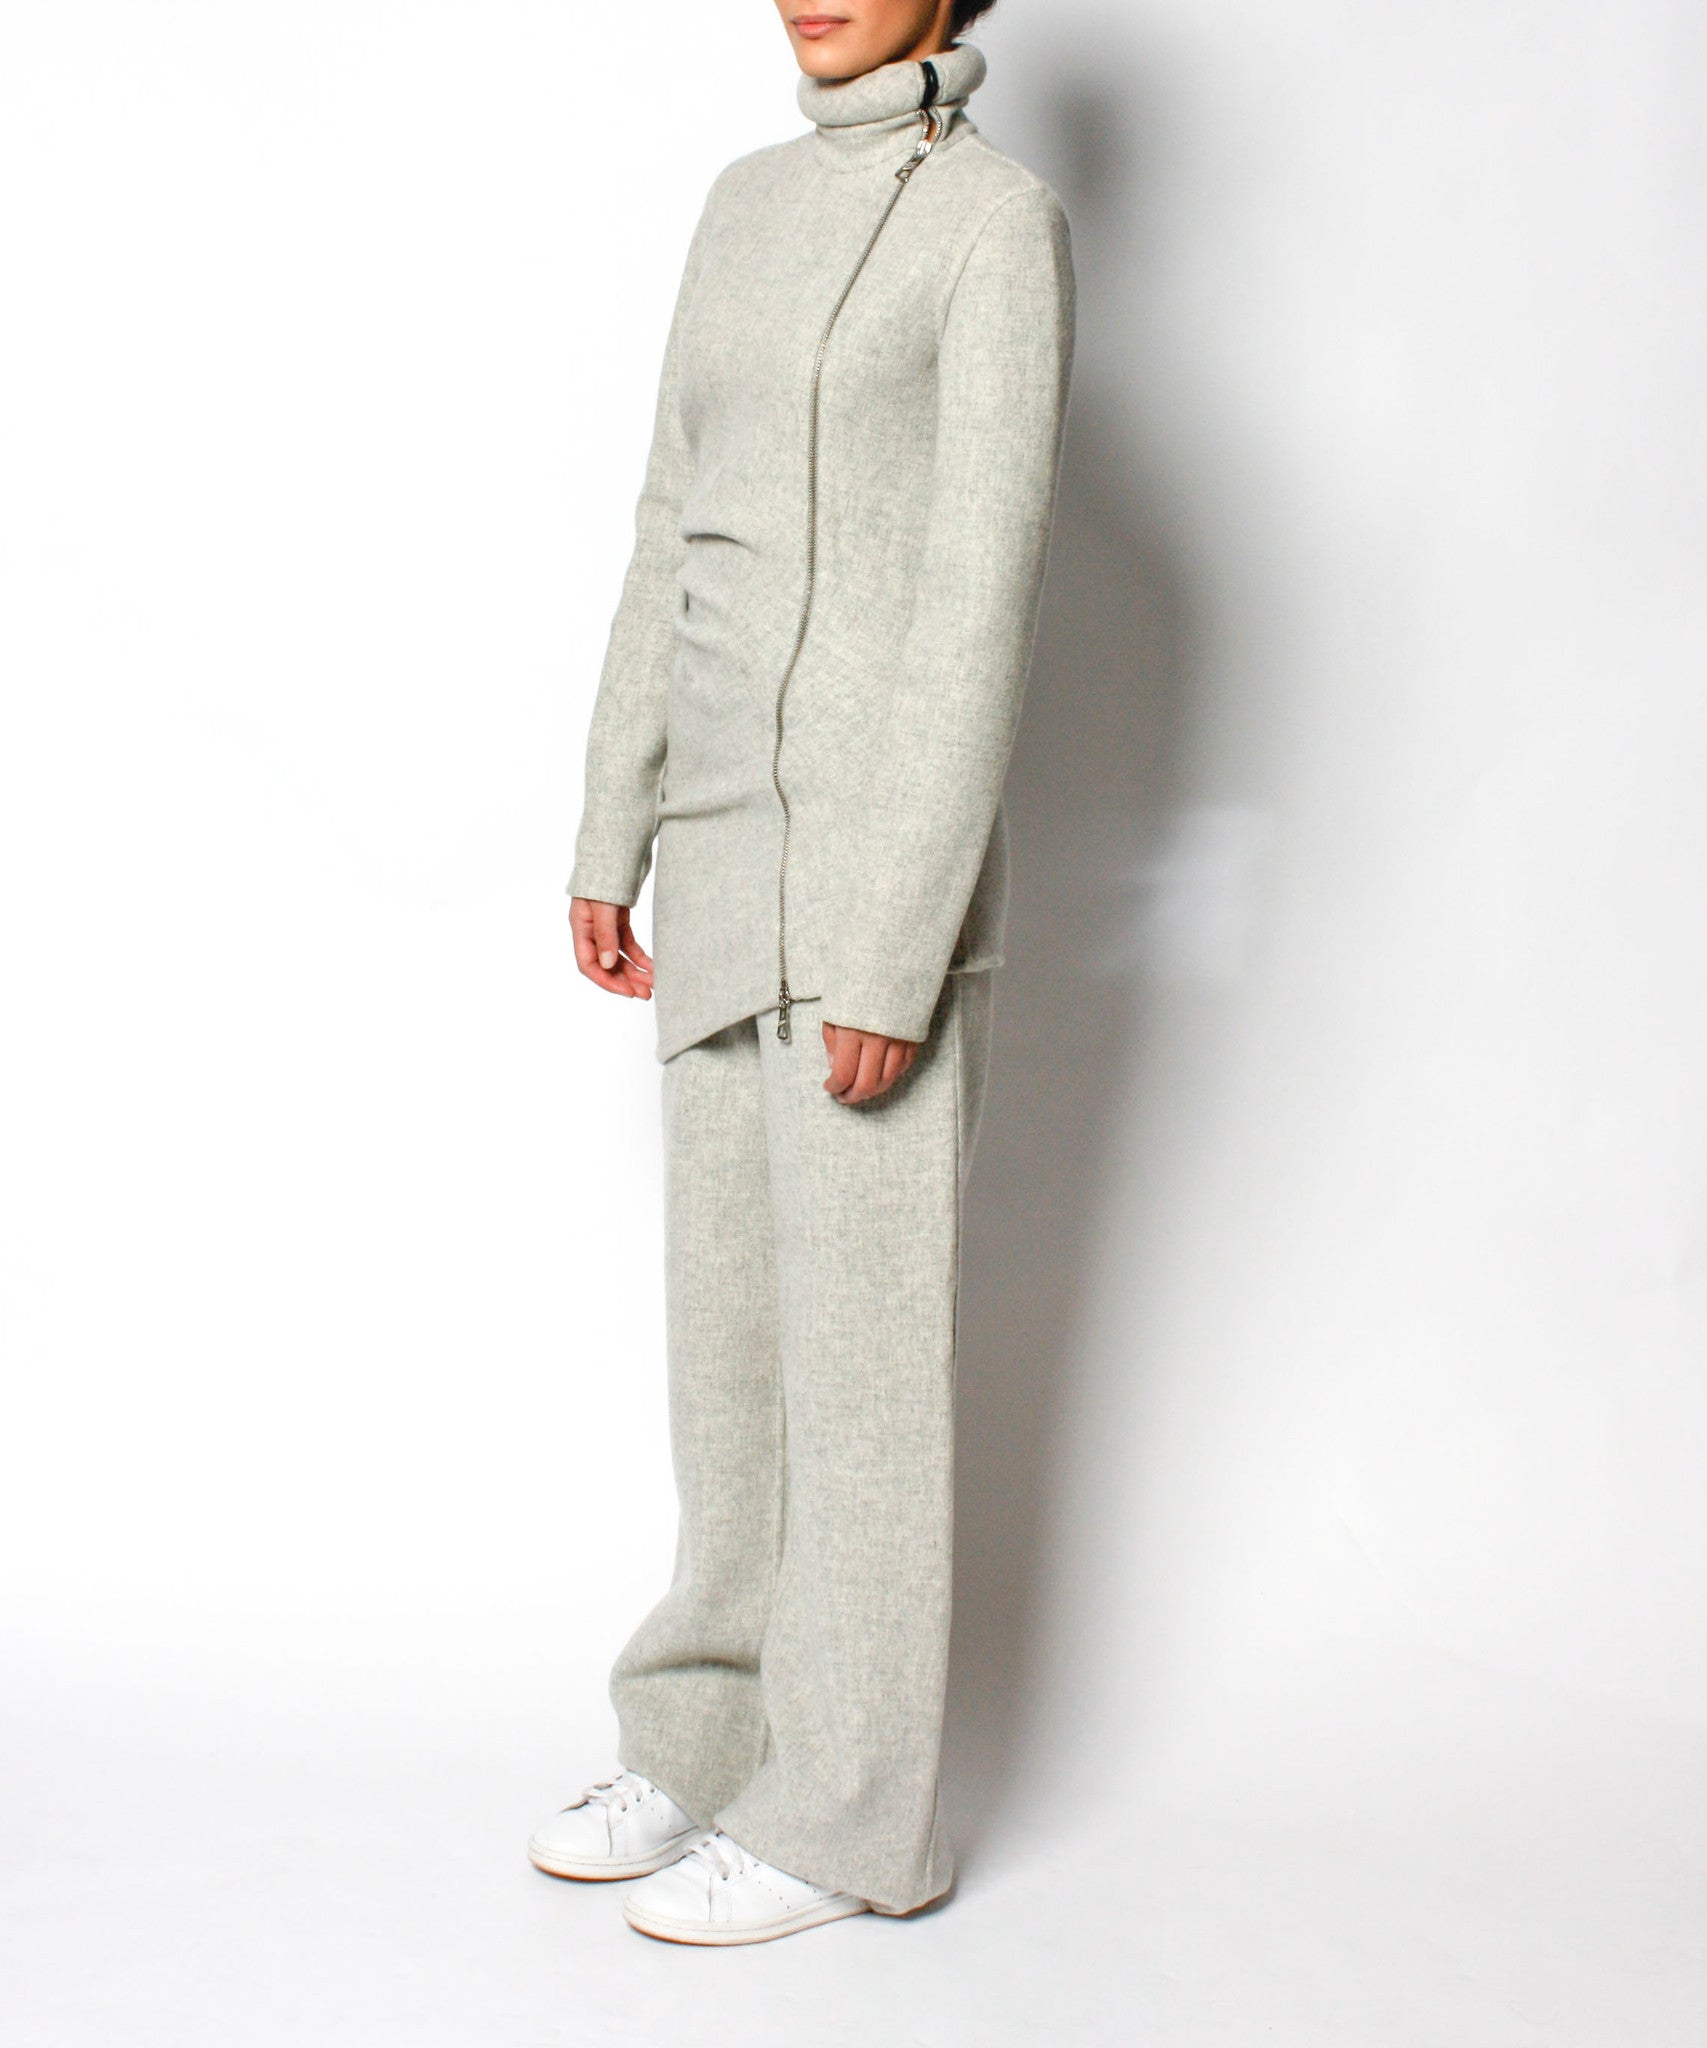 Jean Paul Gaultier 90s Gray Felted Wool With Rolled Neck Zipper Jacket and Pants Set - C.Madeleine's